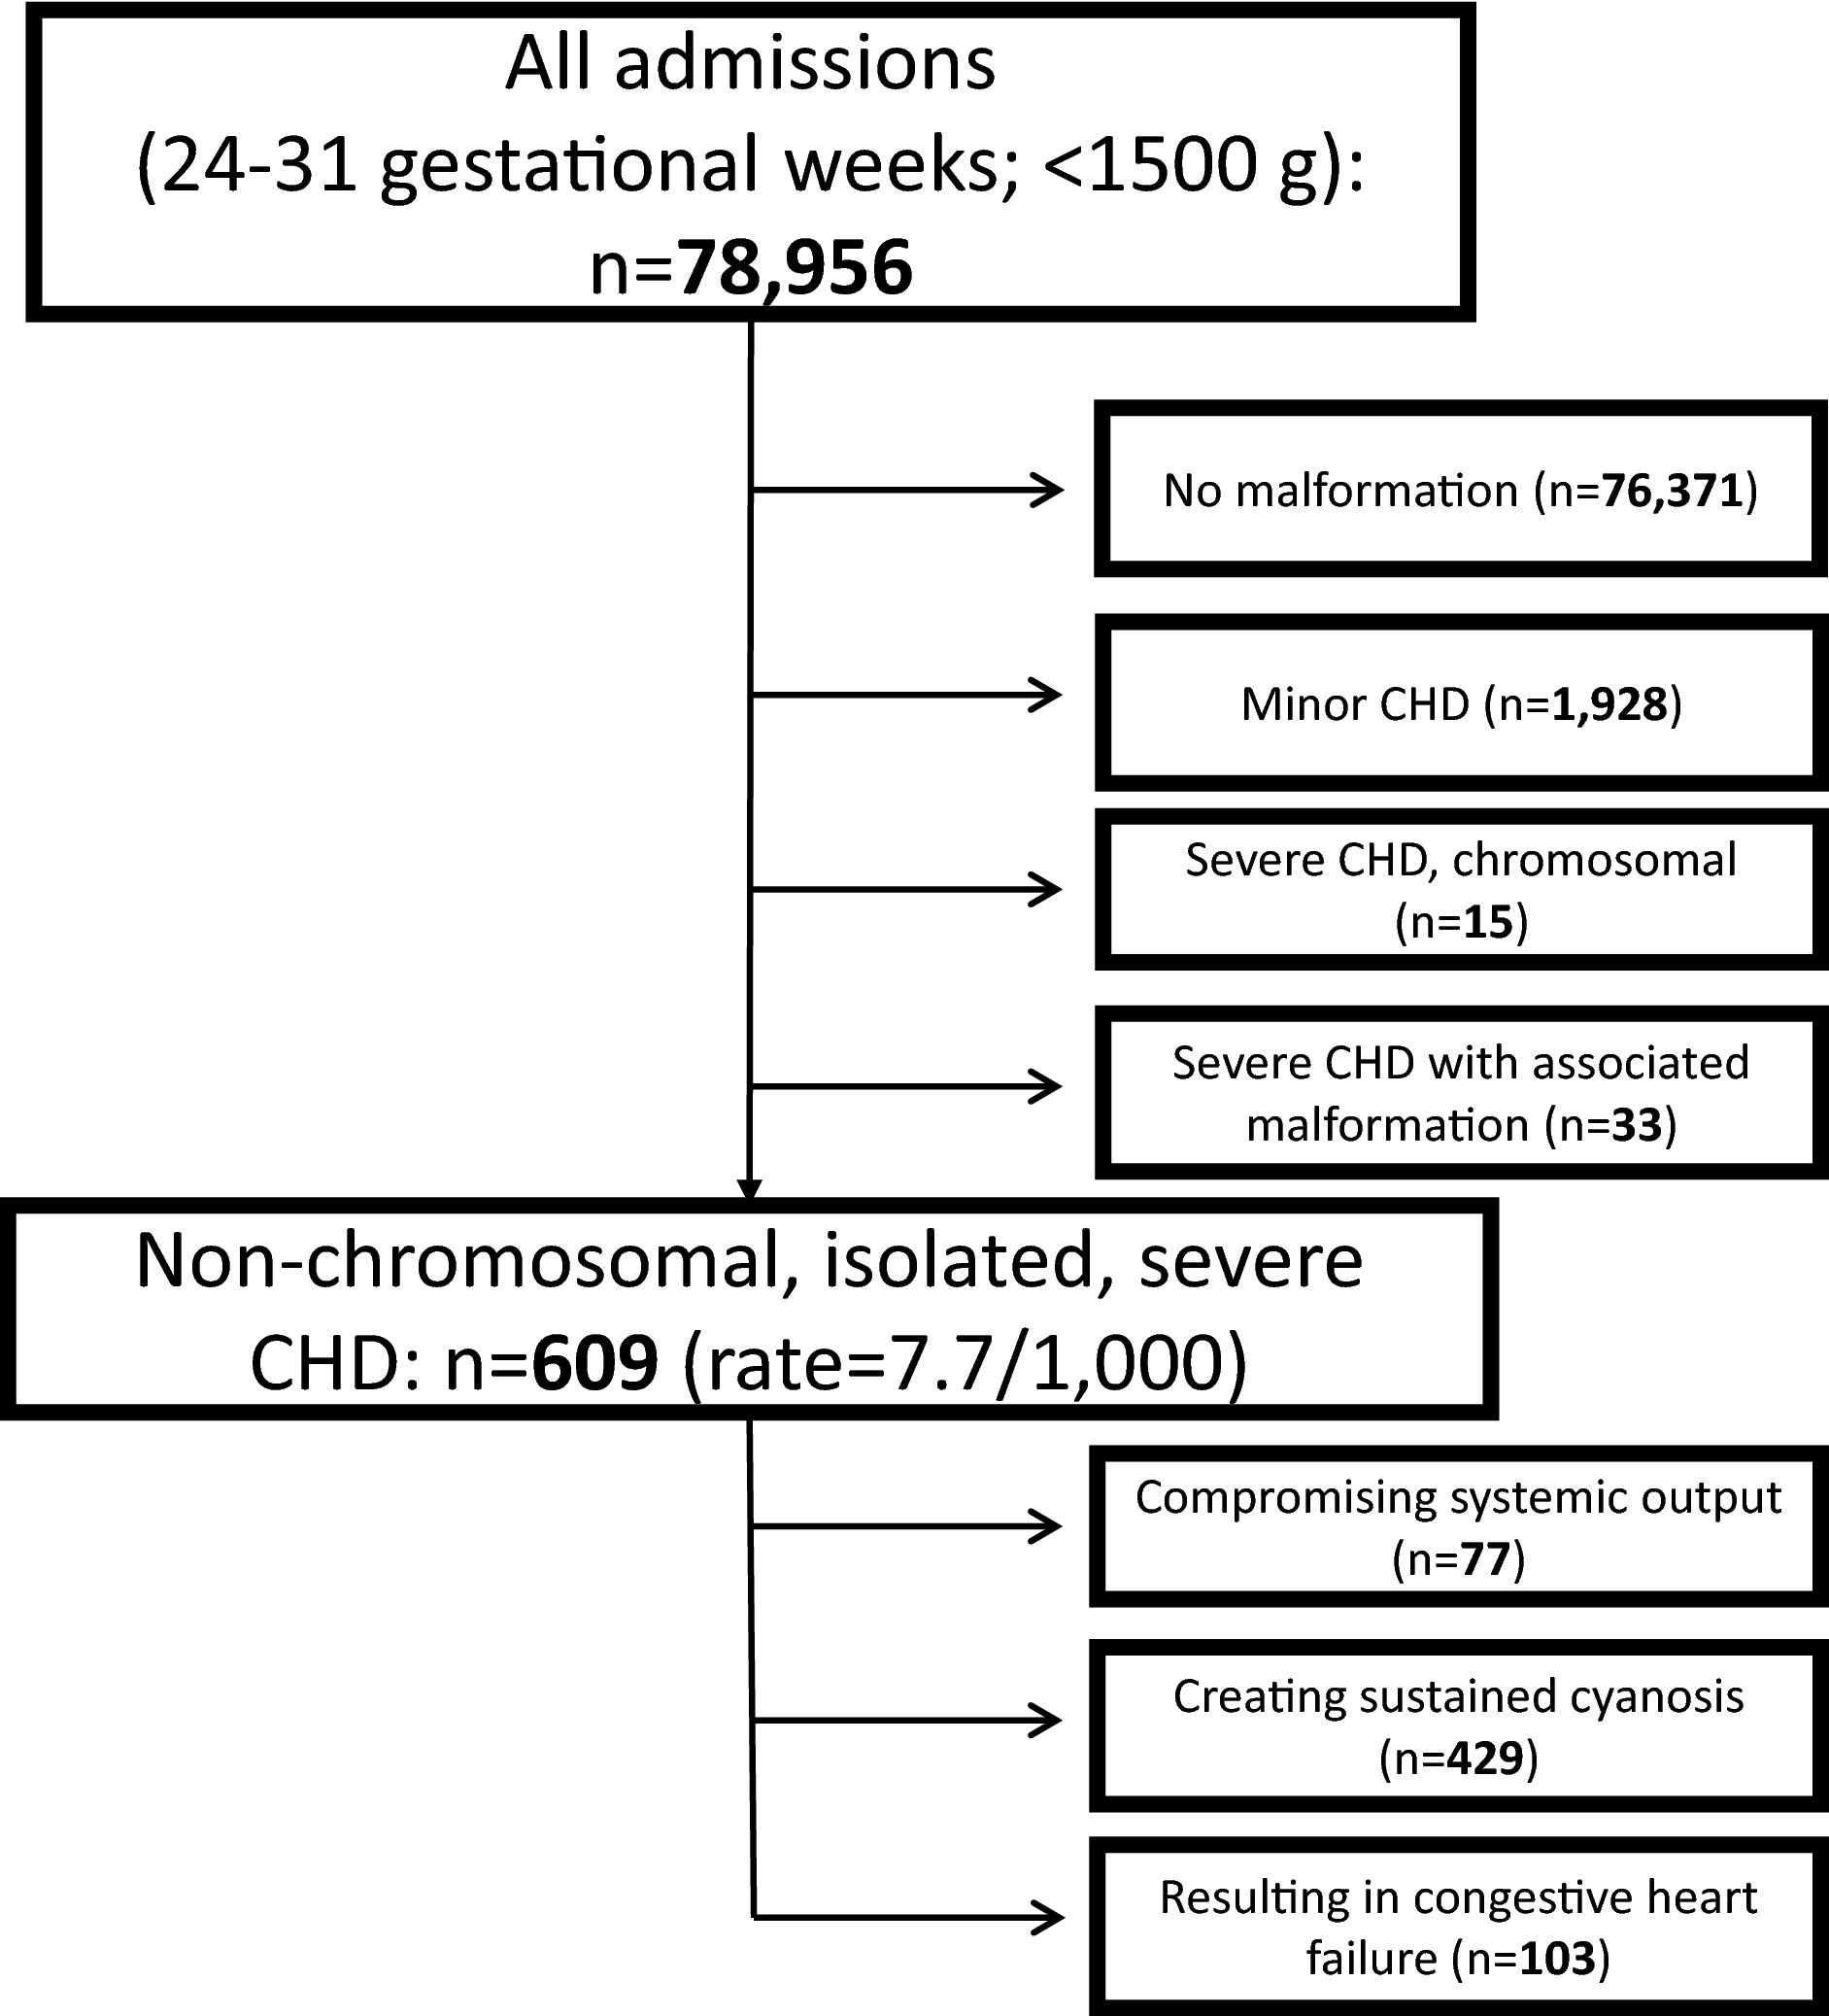 Neonatal Outcomes In Very Preterm Infants With Severe Congenital Heart Defects An International Cohort Study Journal Of The American Heart Association